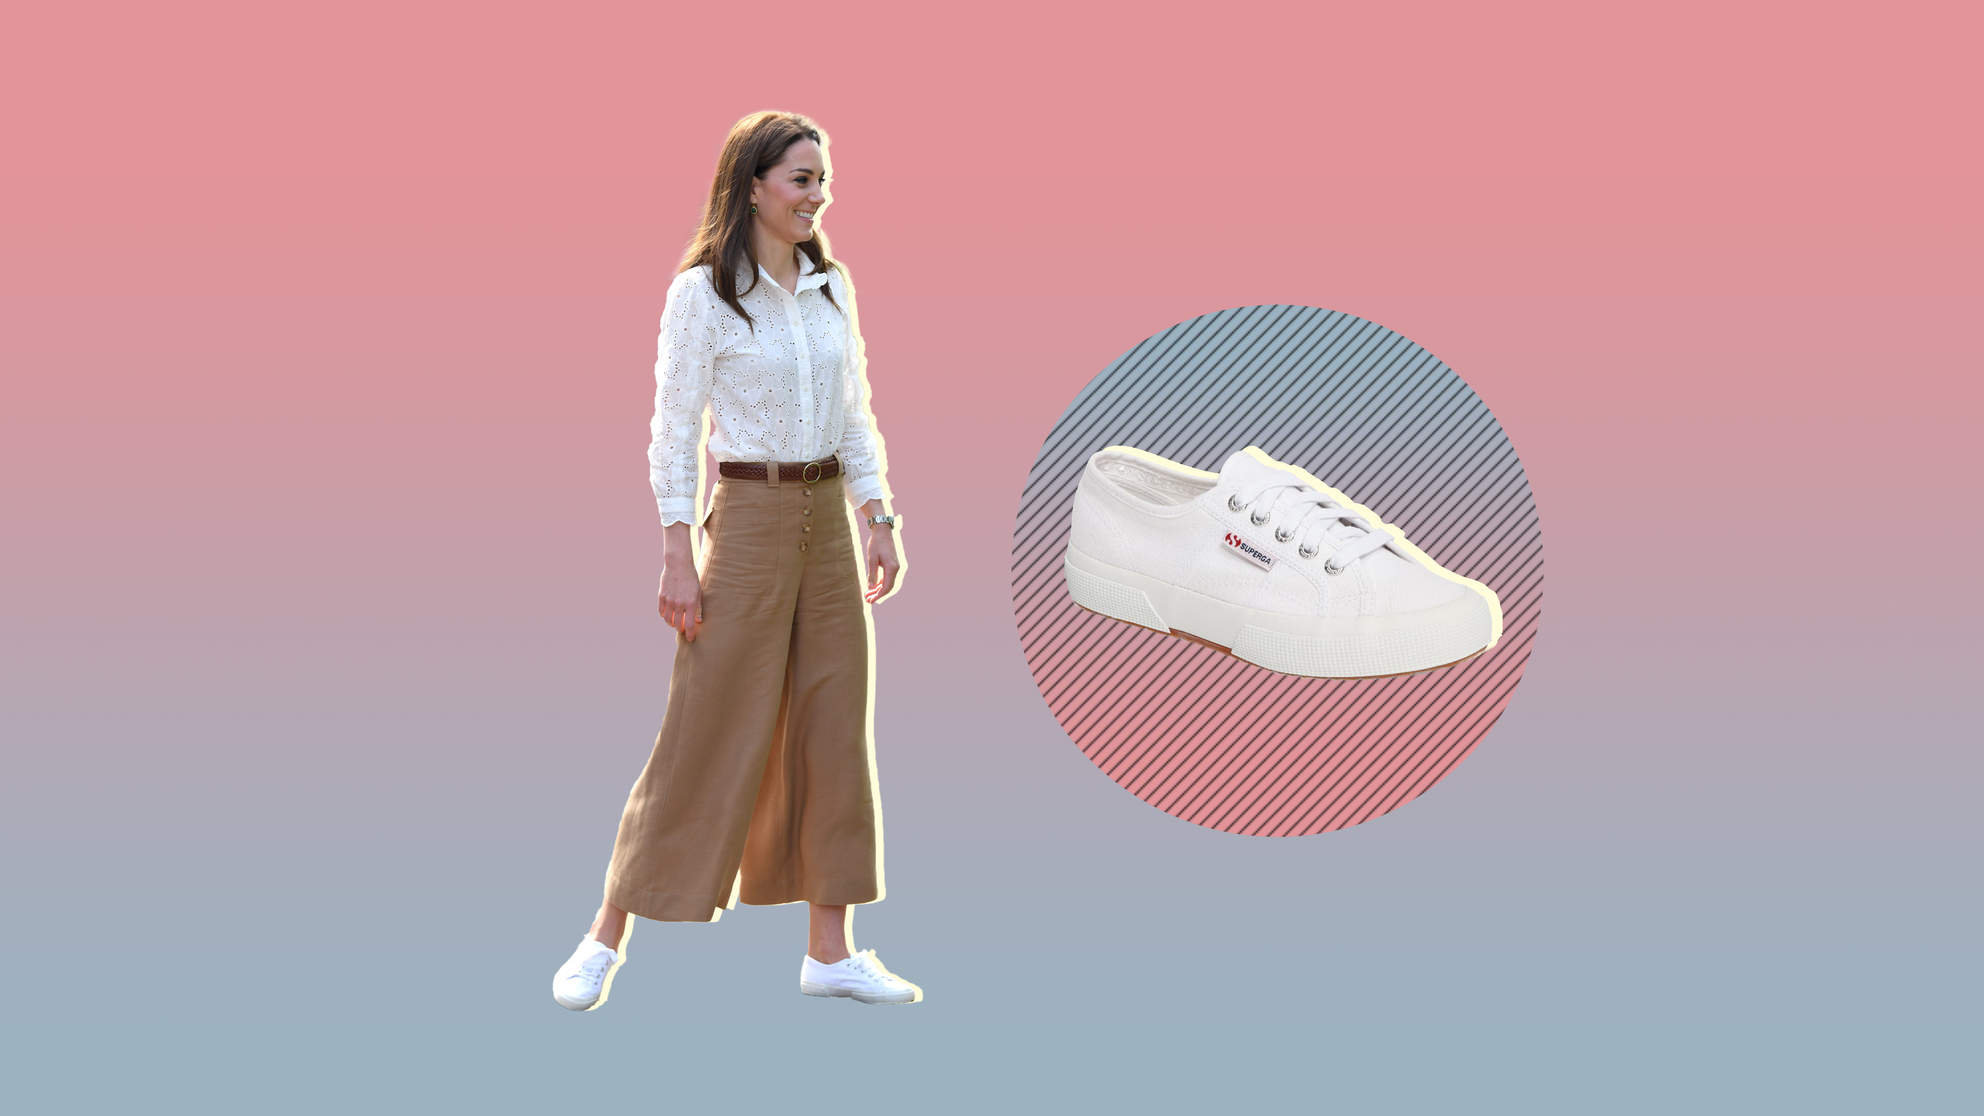 Amazon Prime Day May Be Over, But Kate Middleton's Go-To White Sneakers Are Still on Sale